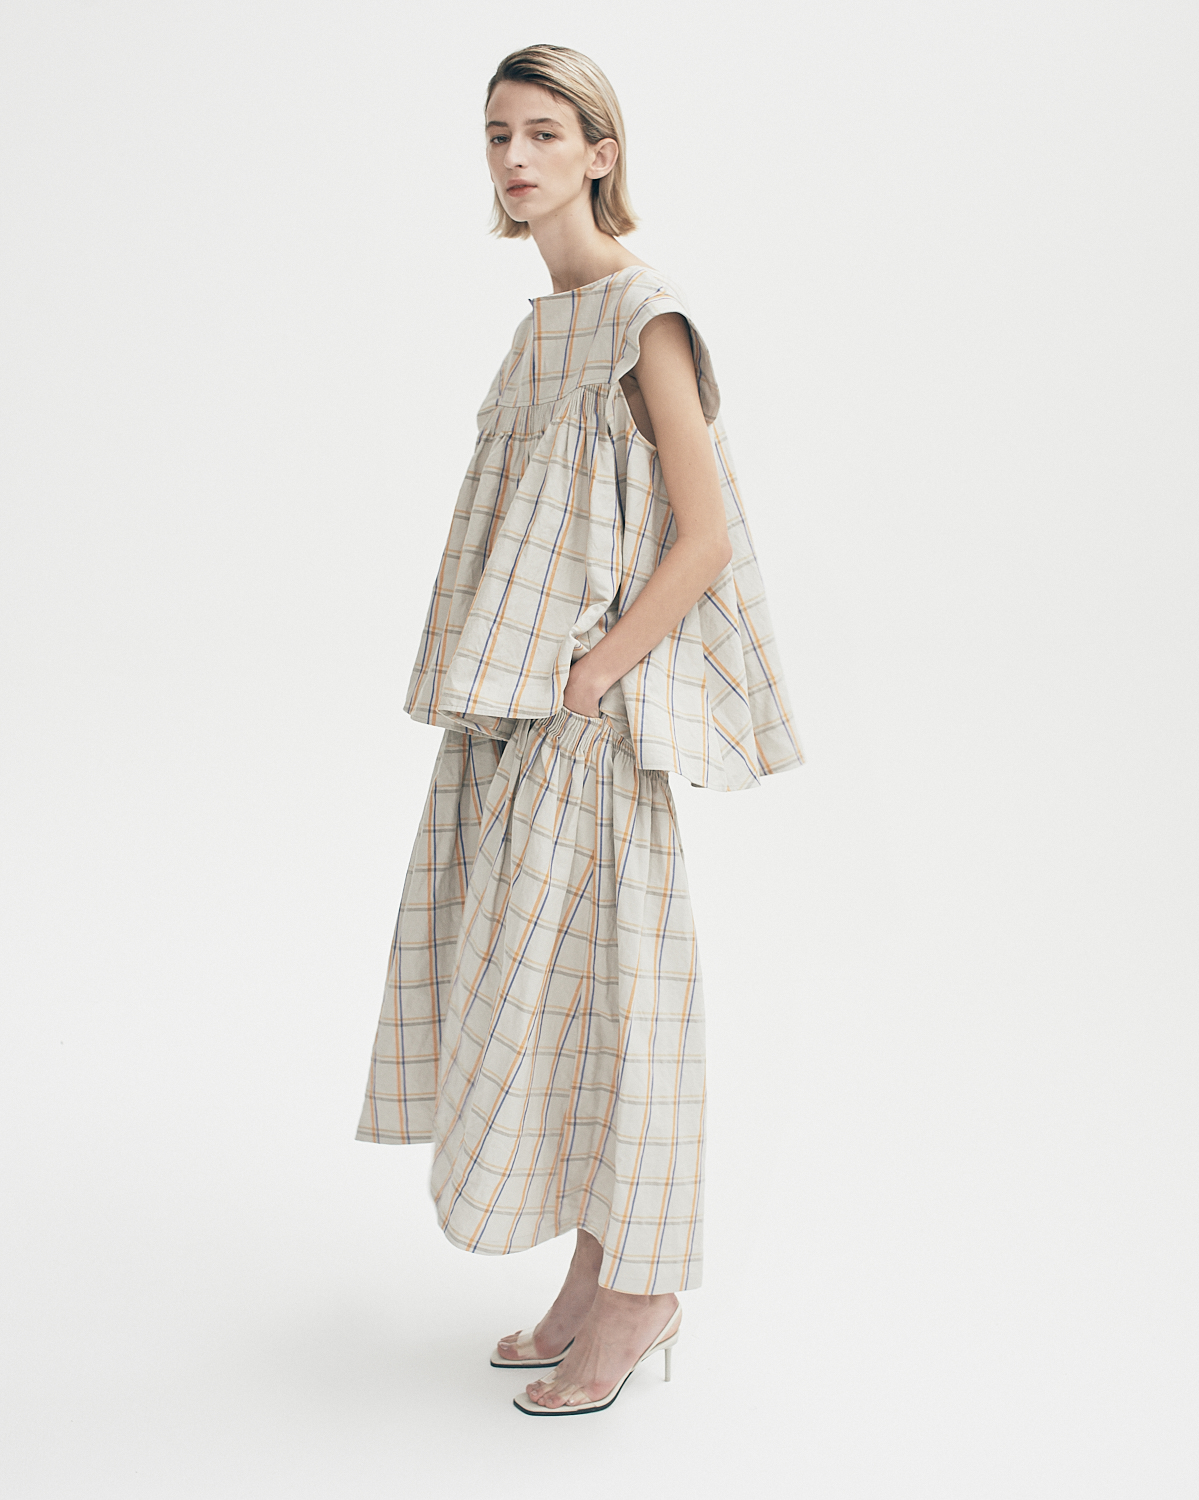 Fairfax Linen Check Large Smock Pocketskirt by Teija on curated-crowd.com